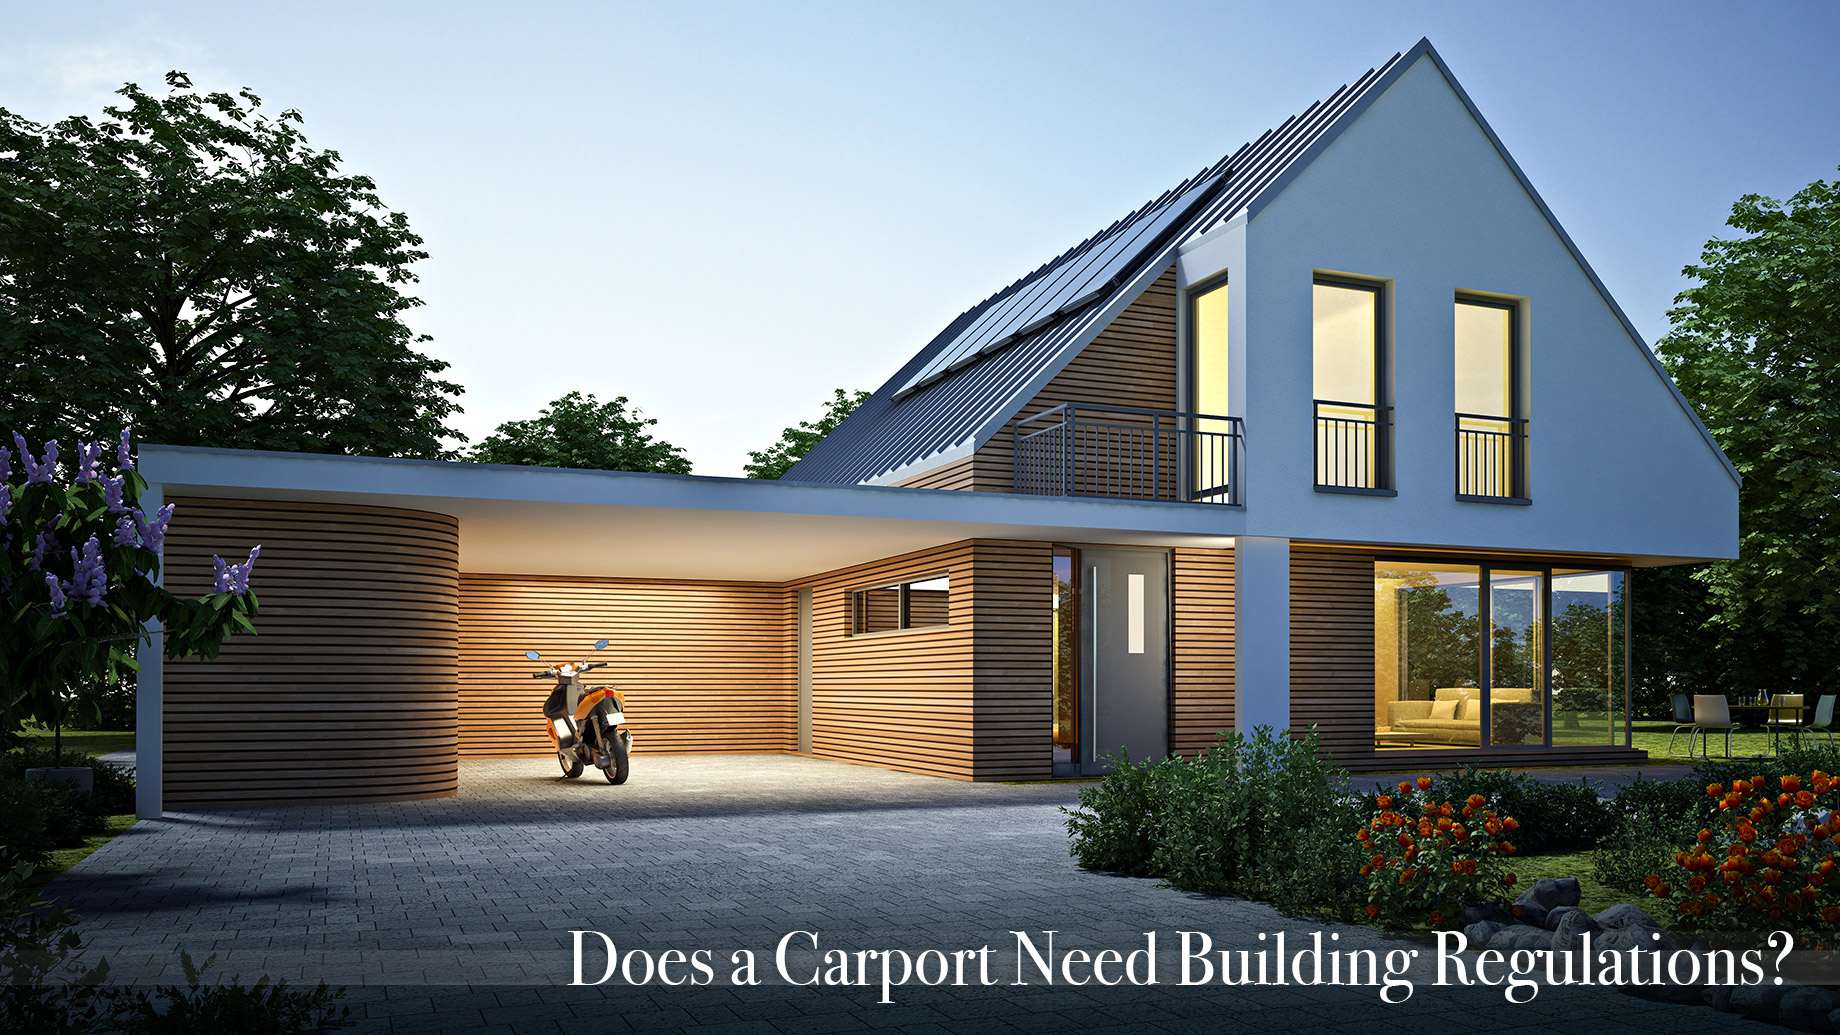 Does a Carport Need Building Regulations?